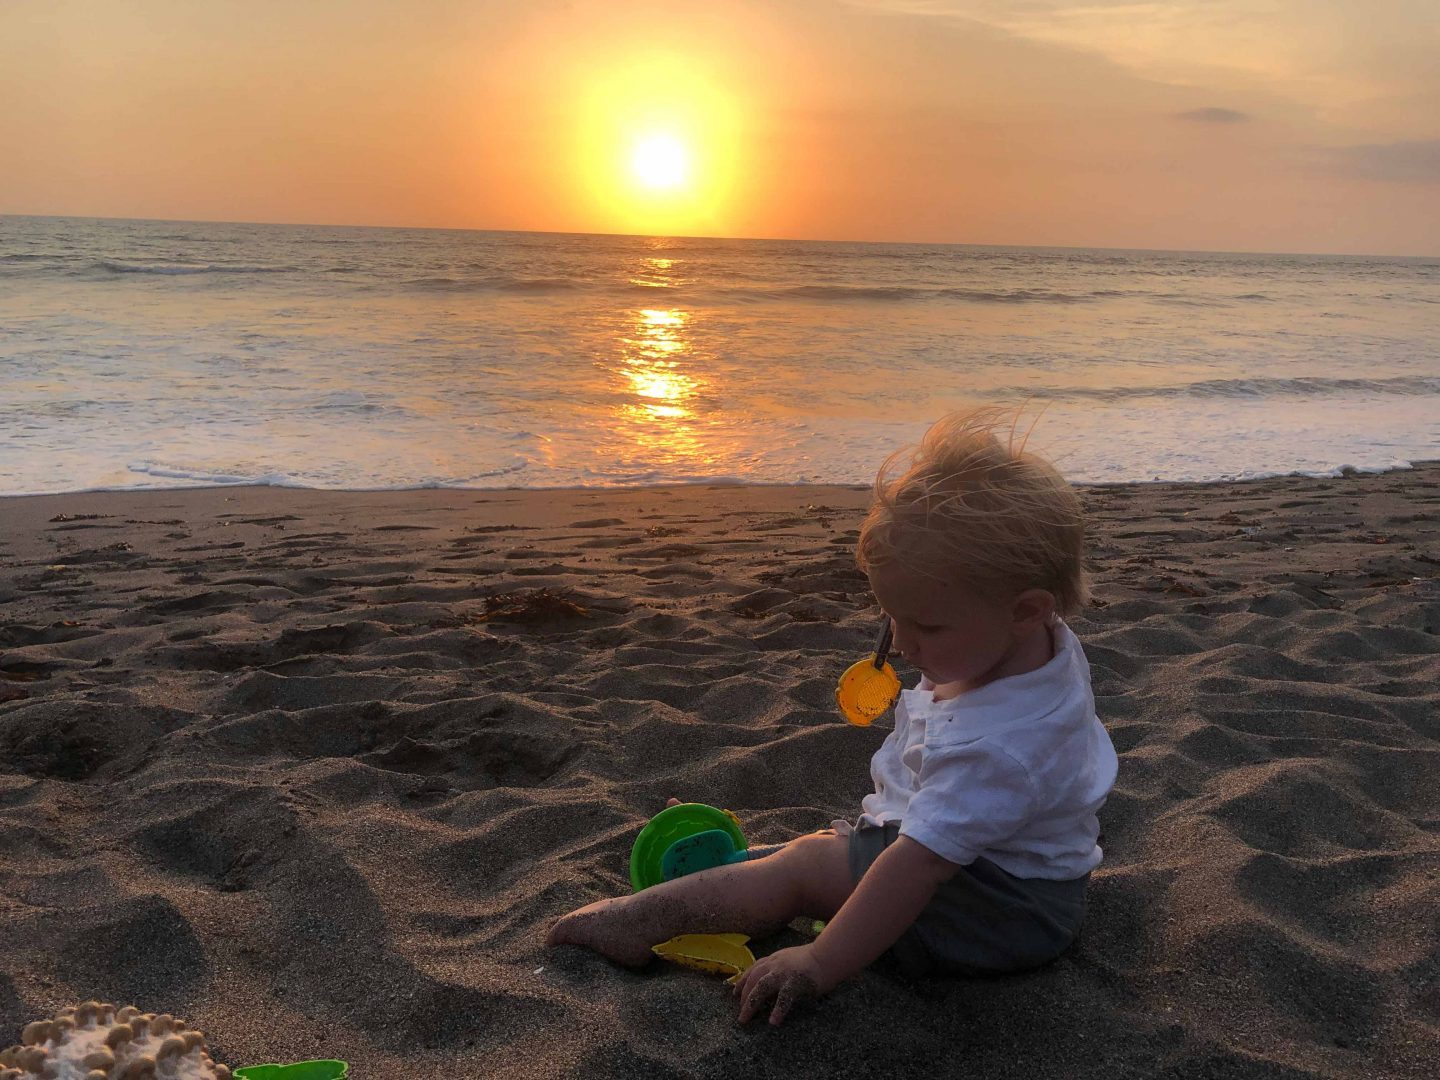 Fun in the sun - Bali with a toddler - Live life and roam